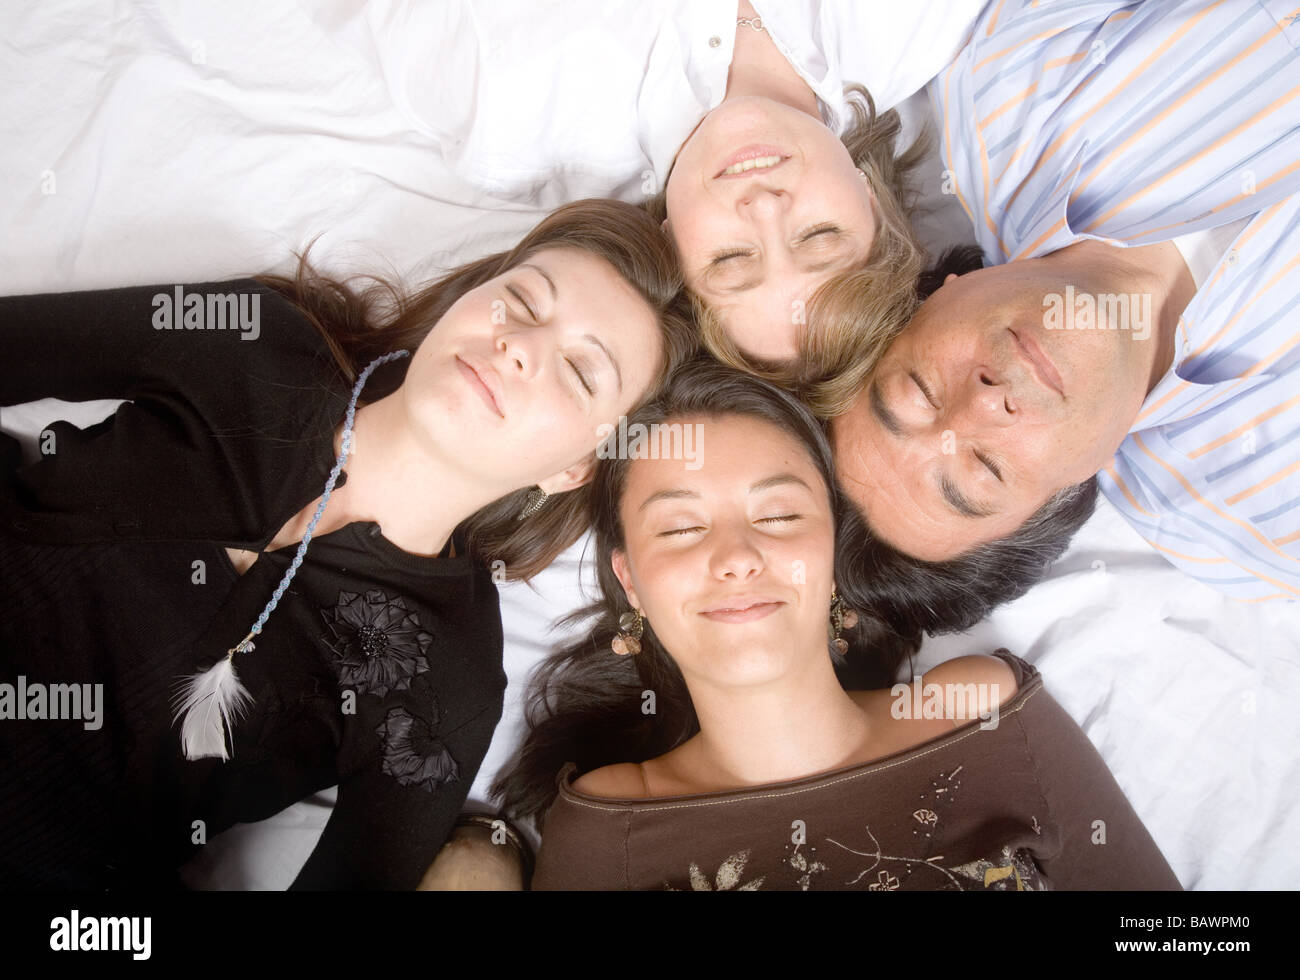 family without worries - sleeping - Stock Image